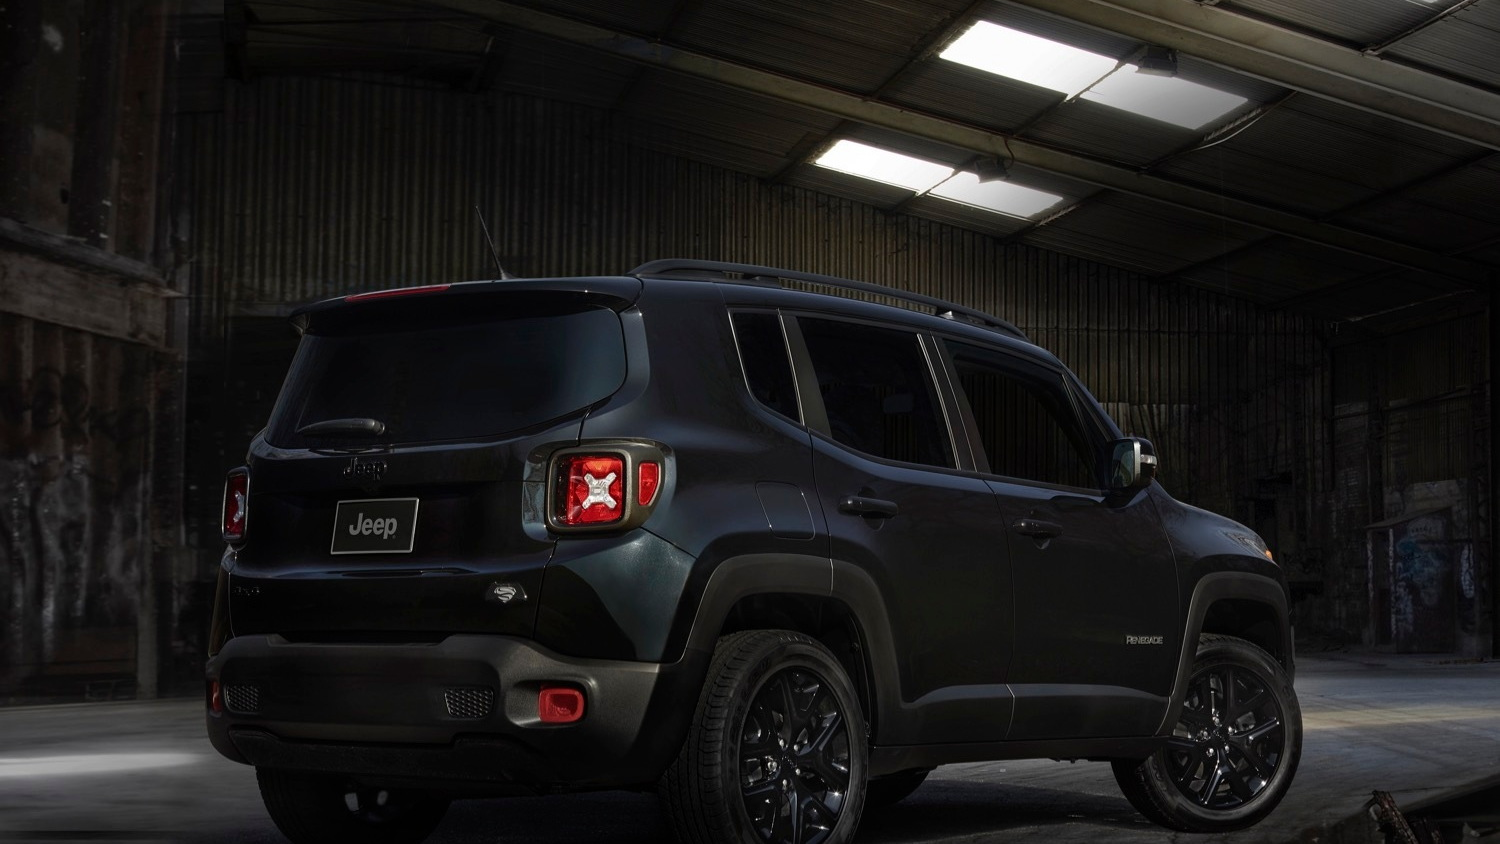 2016 Jeep Renegade 'Dawn of Justice' Special Edition